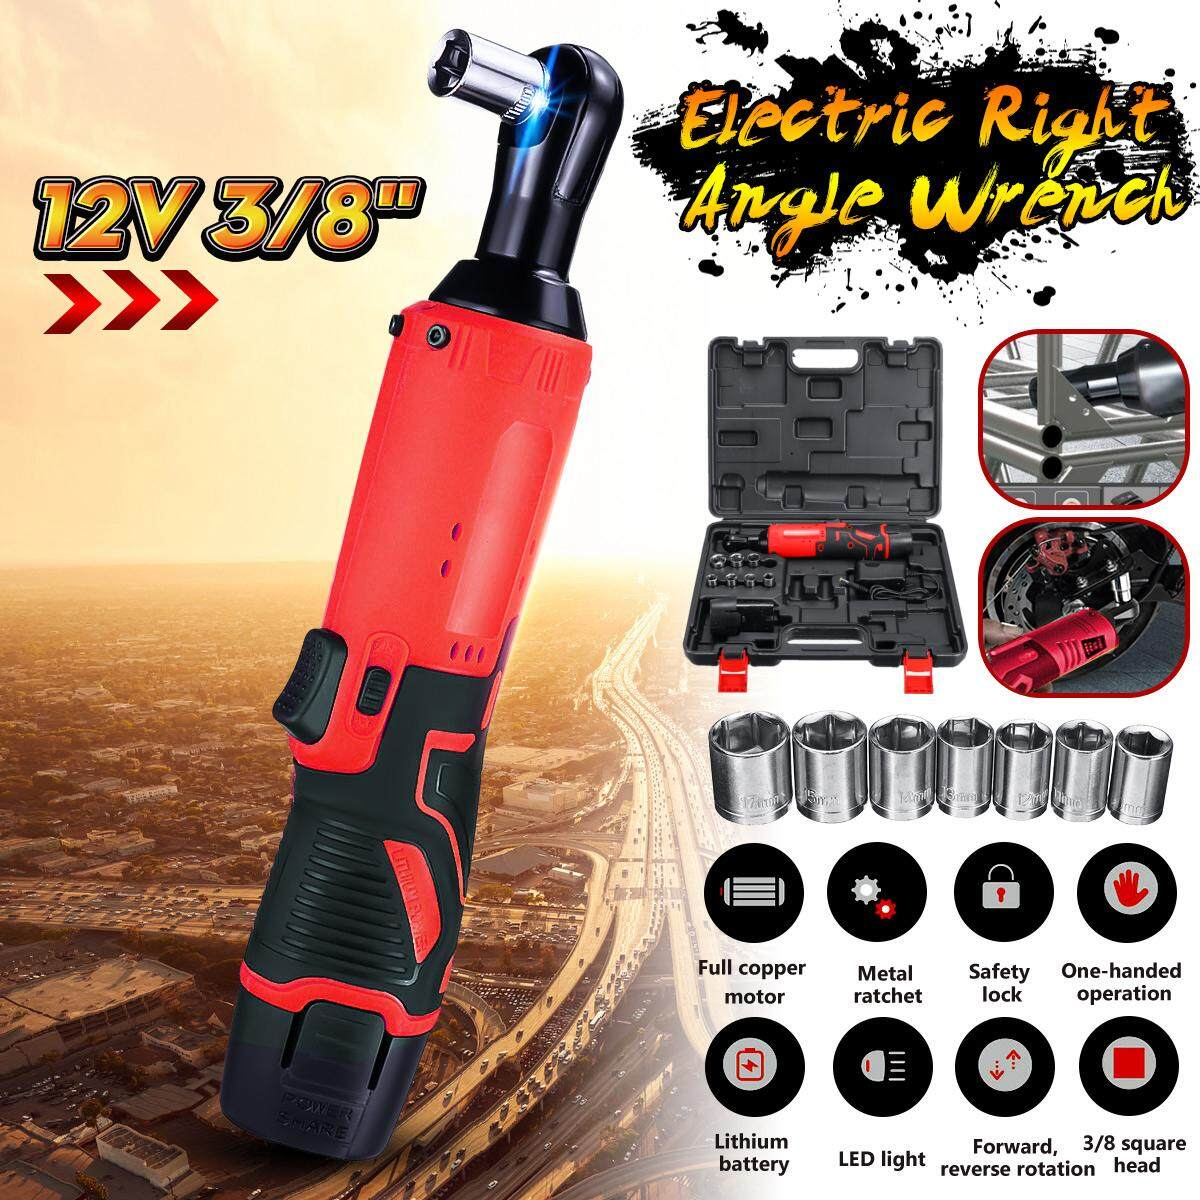 Cordless 3/8 12V 45N.m Rechargeable Ratchet 90° Right Angle Wrench Set Portable-RED2